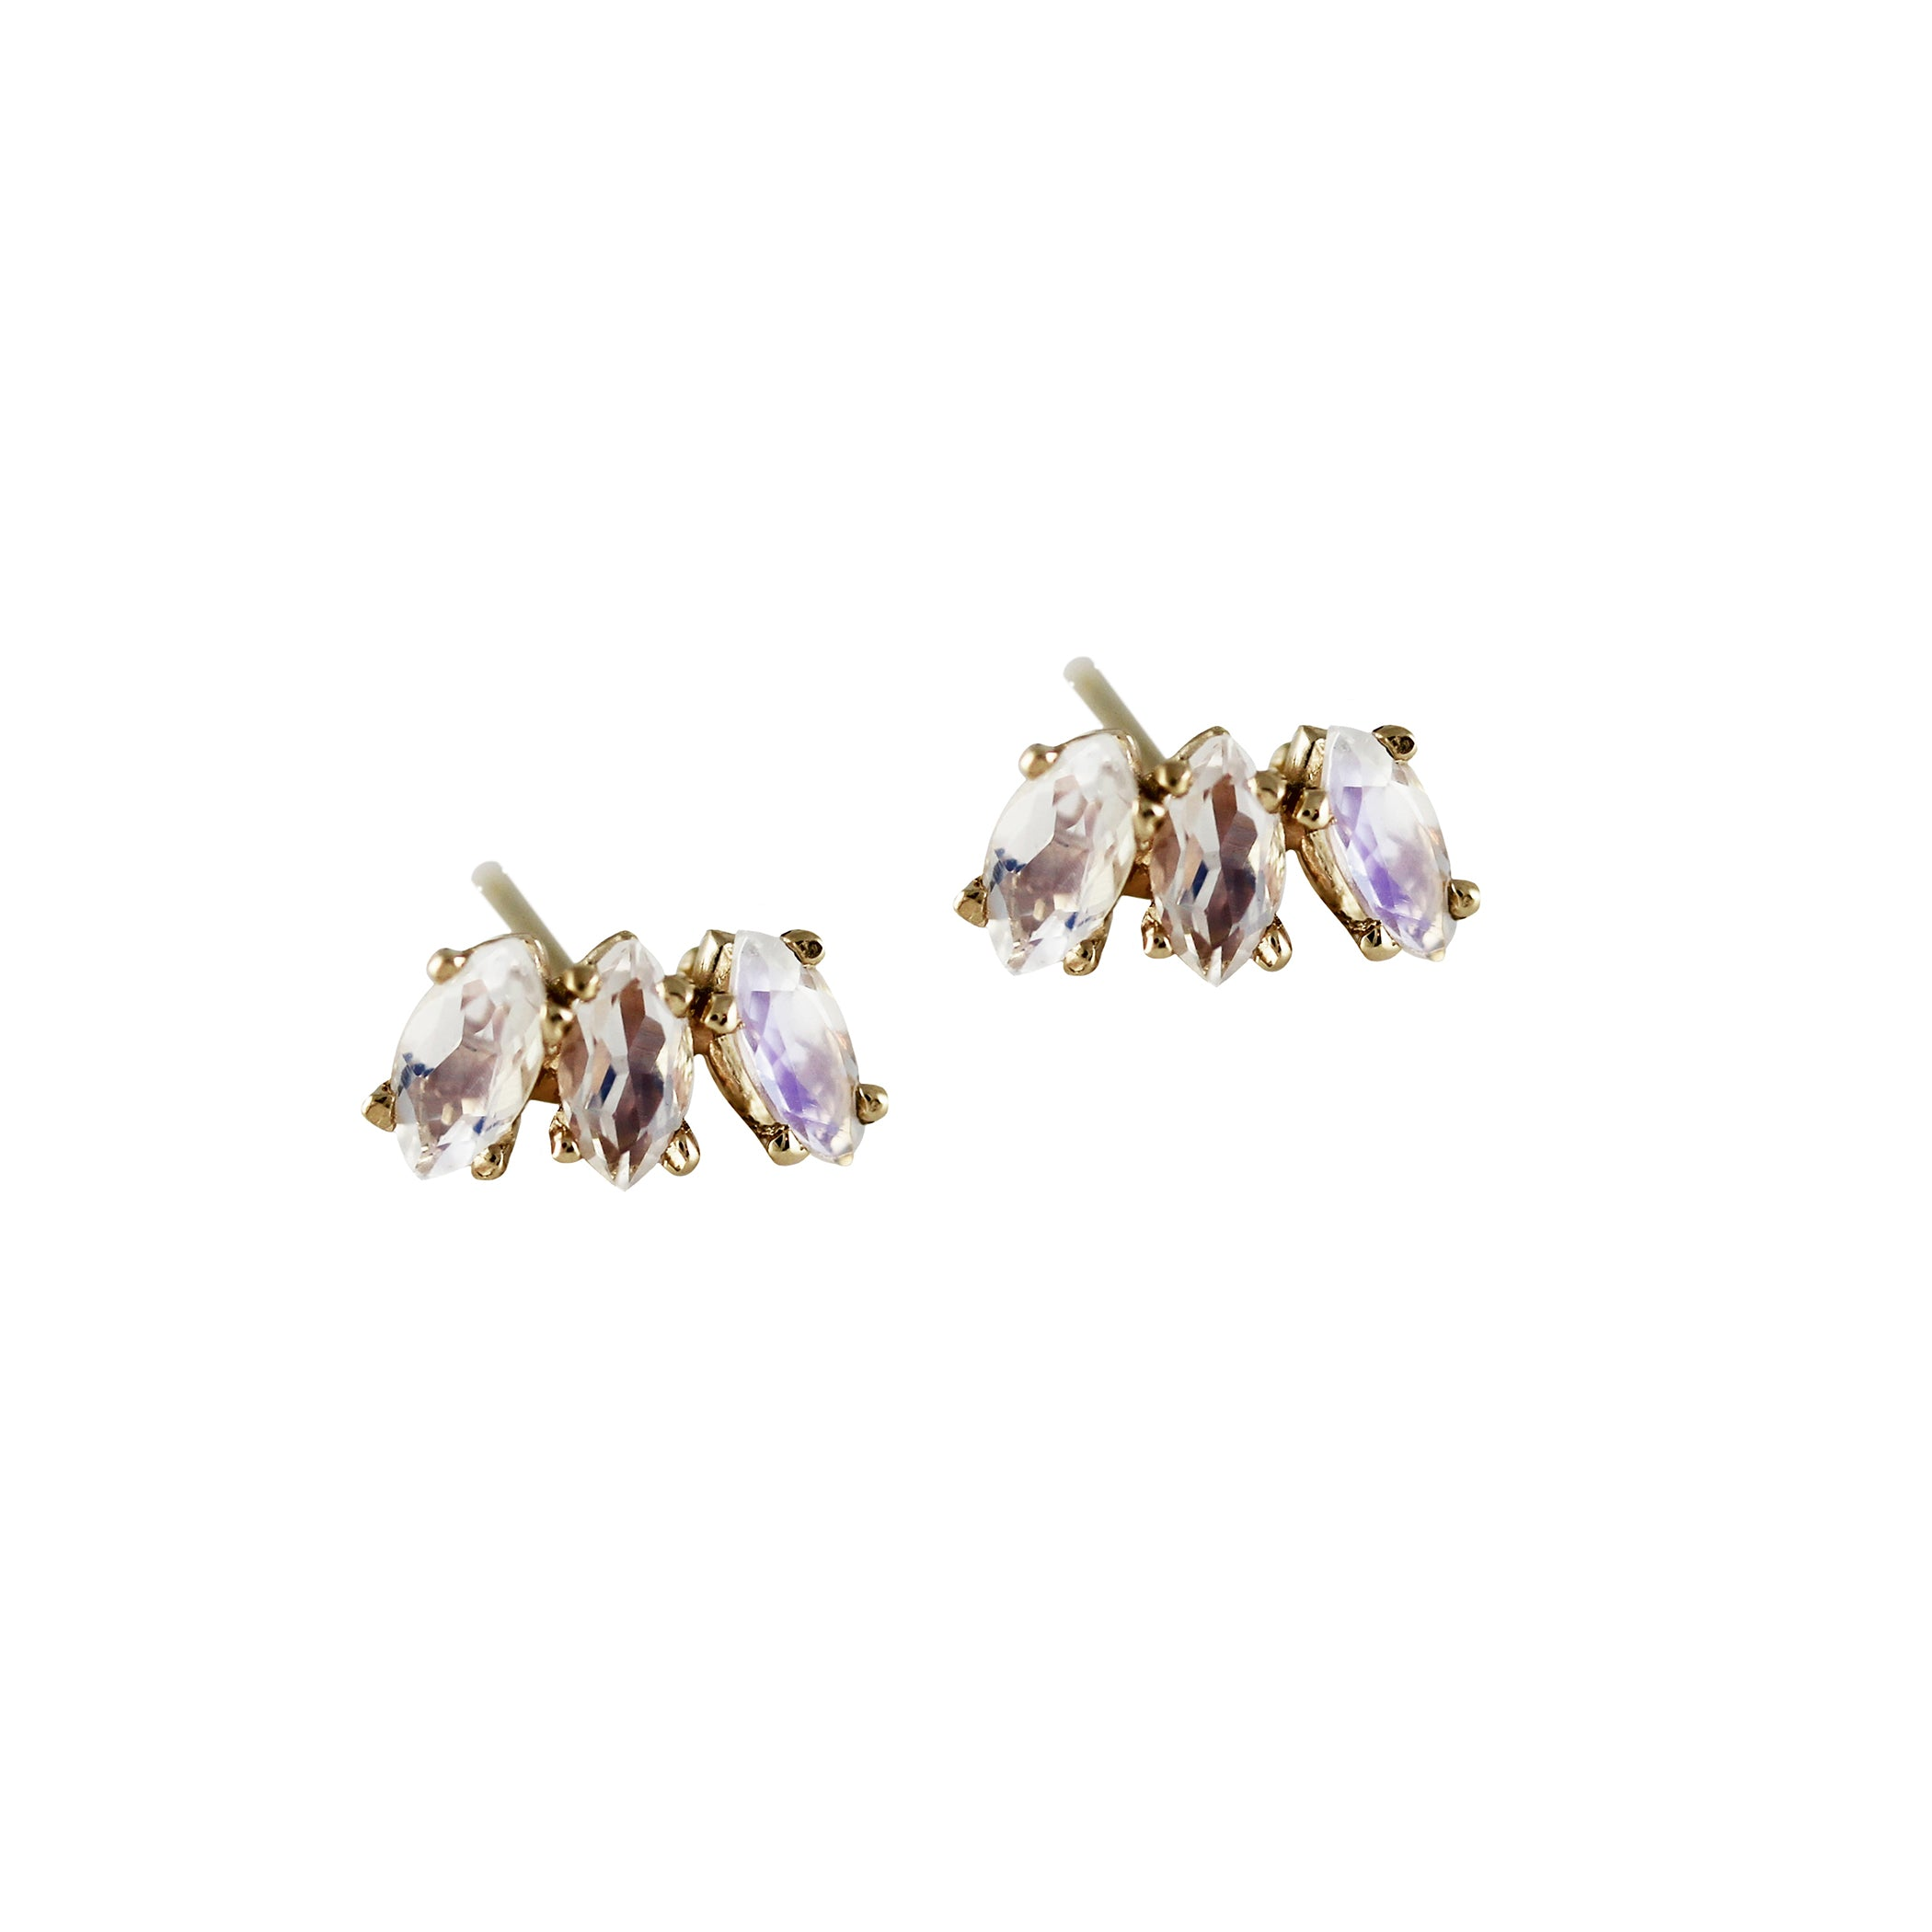 strands it elegant burst rhinestone marquise pin buy elongated dangle stud now earrings crystal